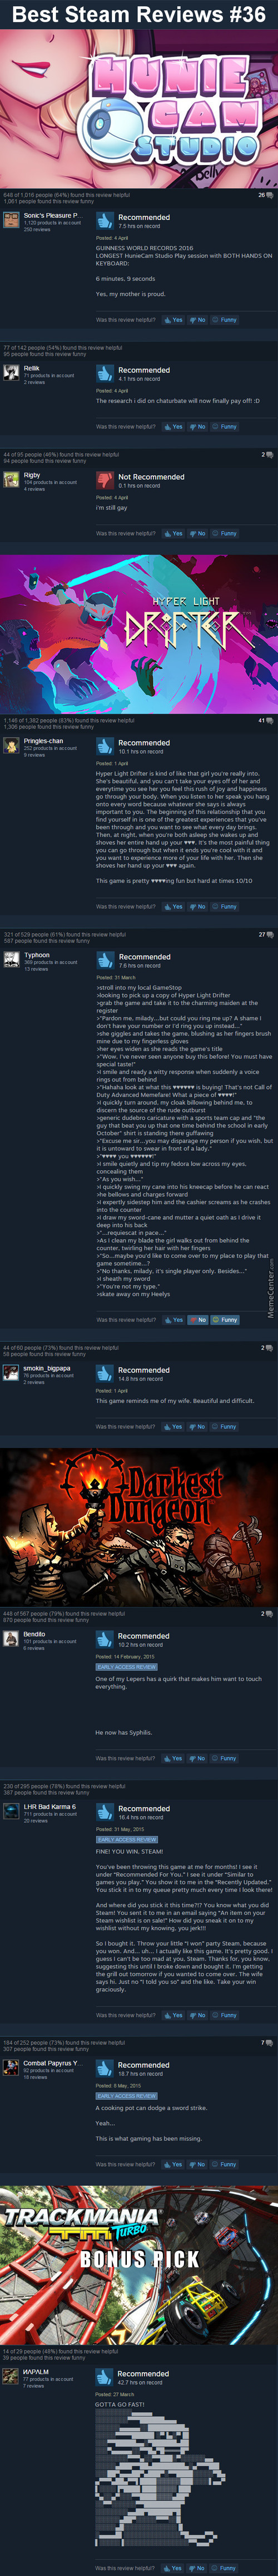 Best Steam Reviews #36 - Yes, I Unironically Like Dxd